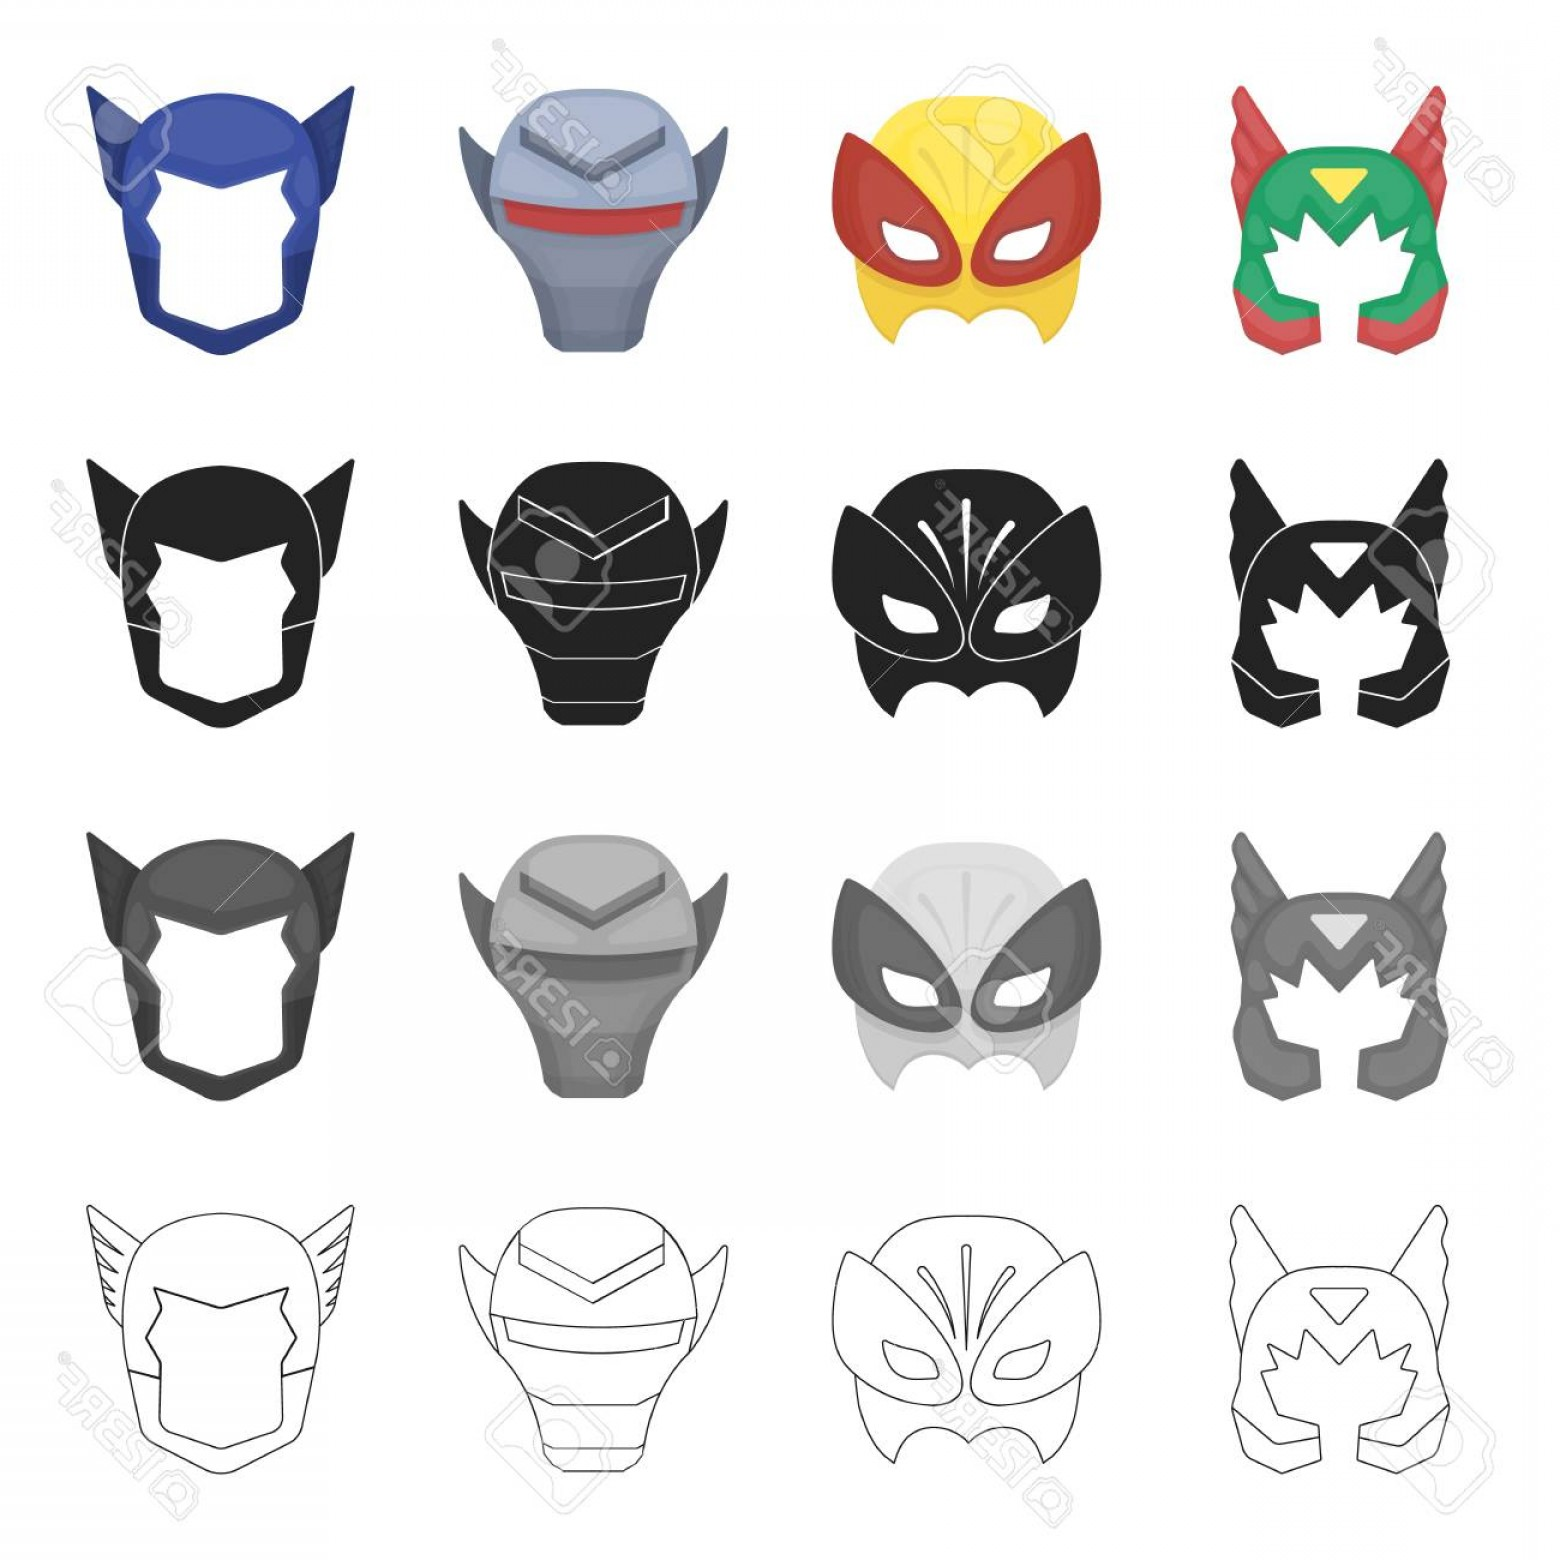 Batman Mask Sketch Vector: Photostock Vector Mask Cinematography Cartoons And Other Web Icon In Cartoon Style Thing Dress Film Icons In Set Colle